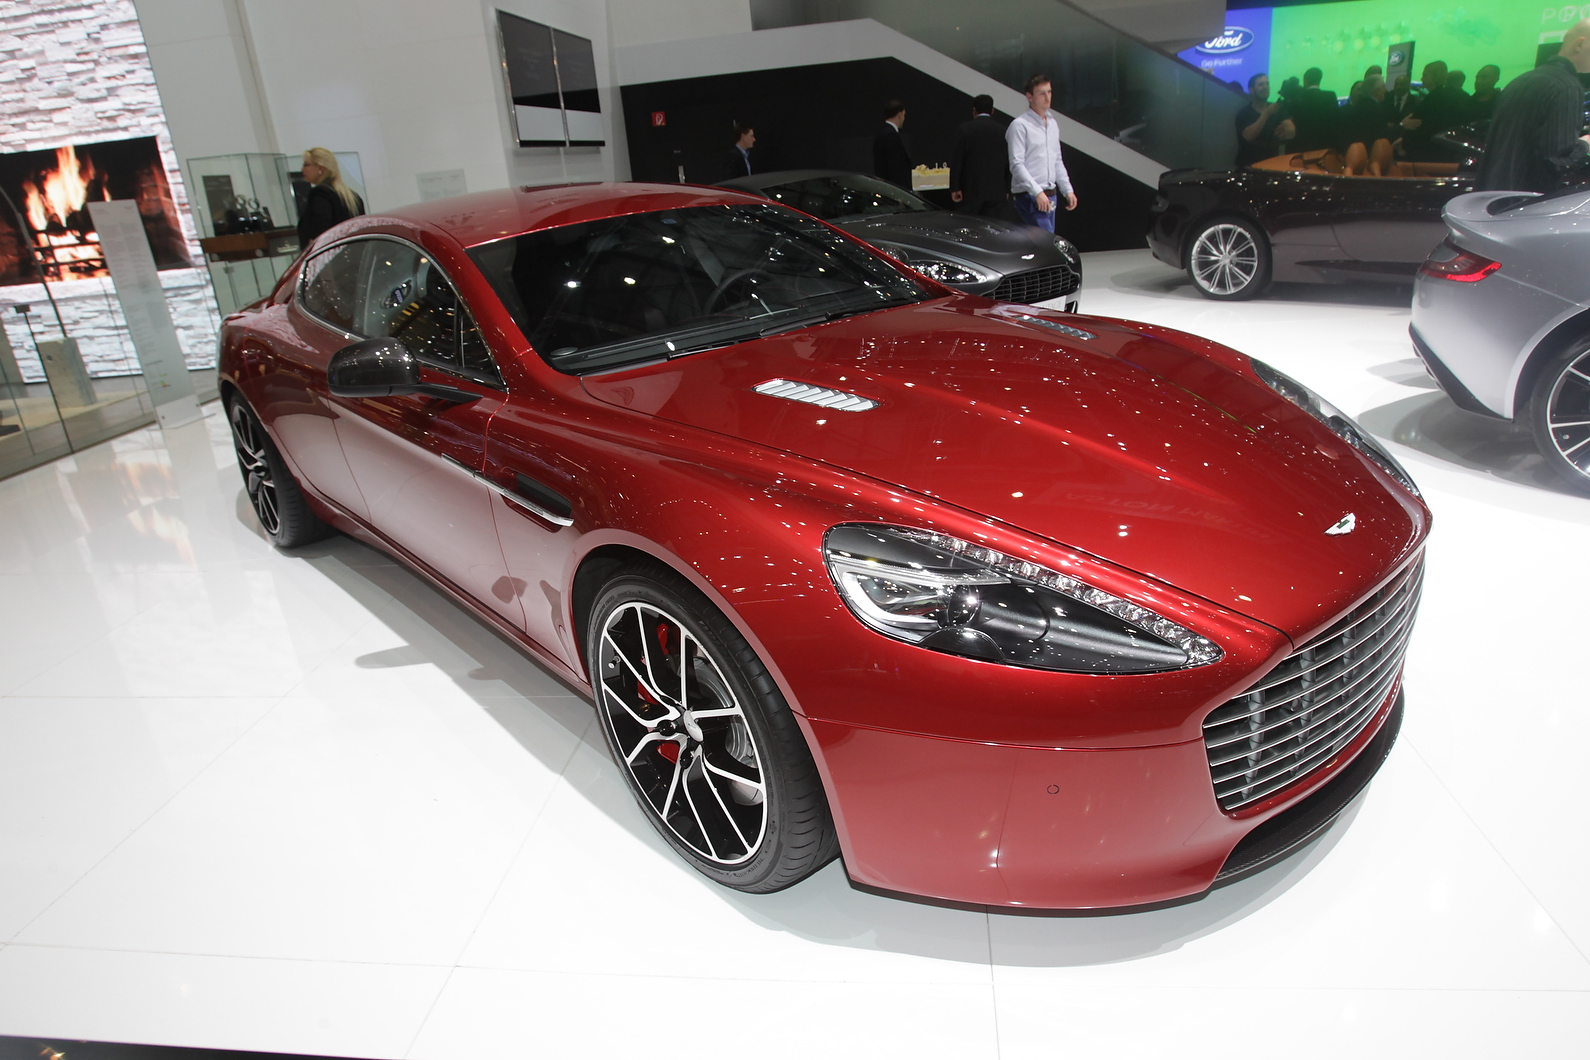 Aston Martin has upgraded Rapide to 550bhp Rapide S